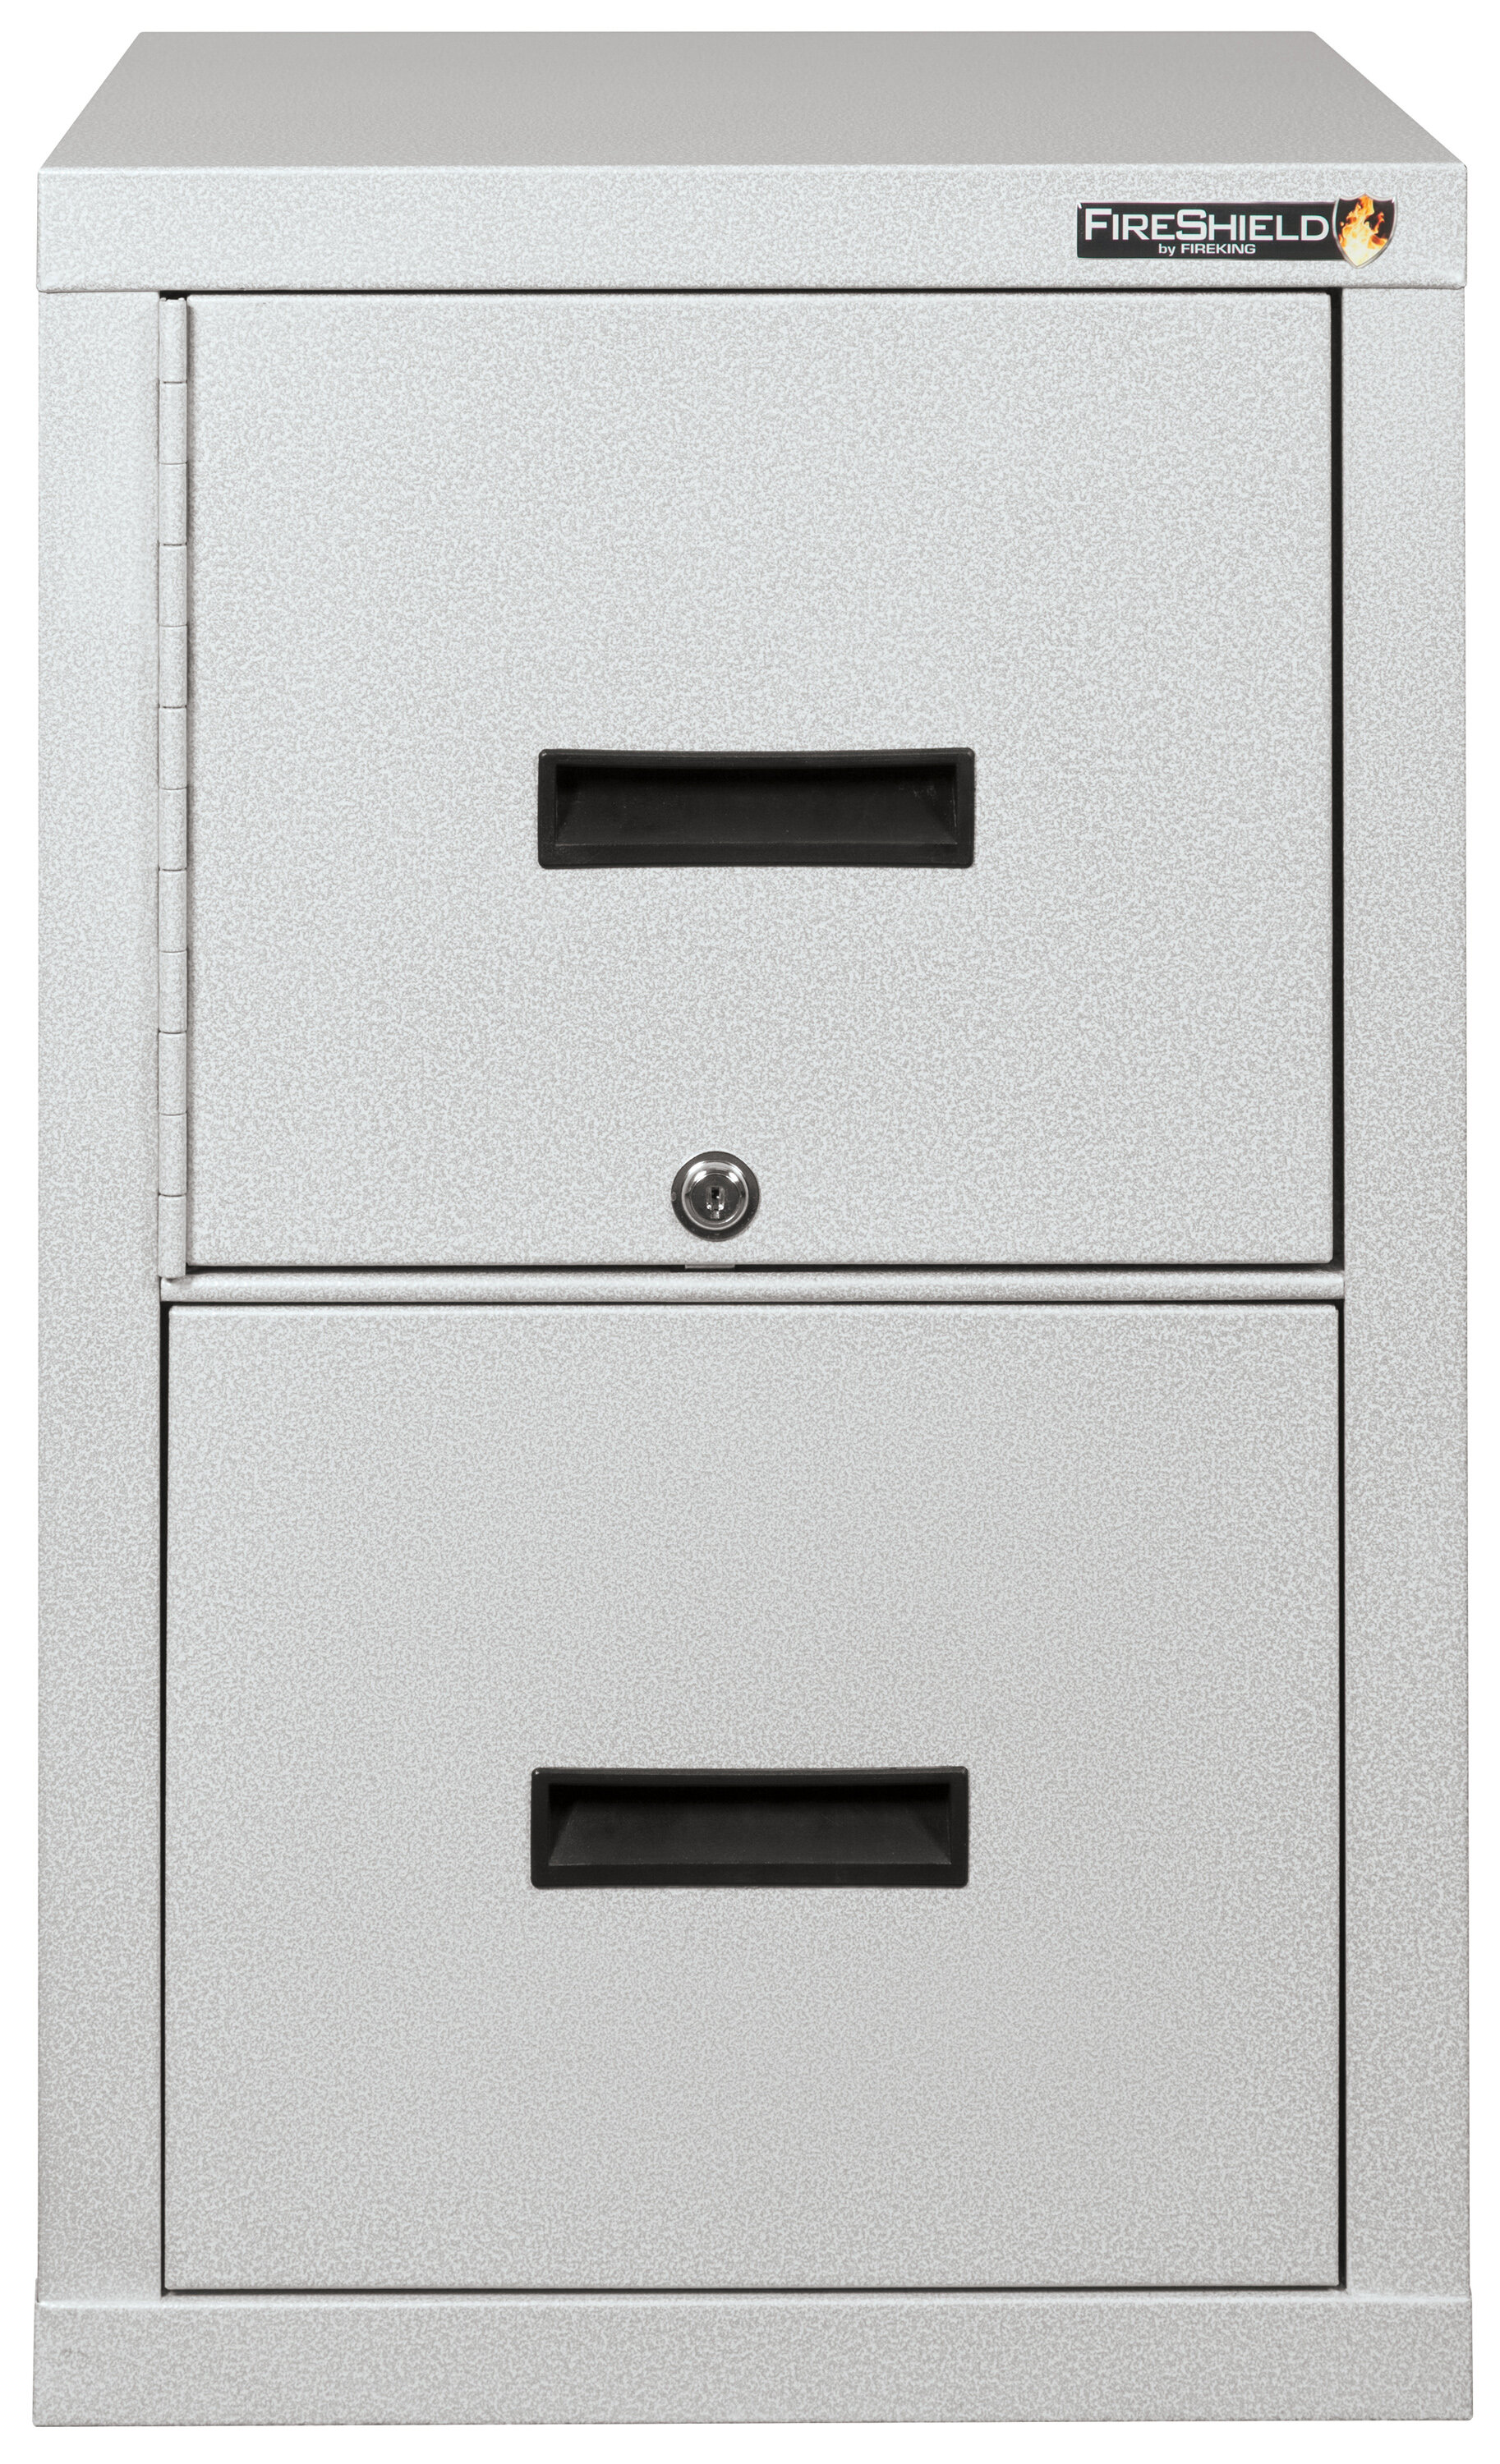 Astonishing Turtle Lightweight Vertical Fireproof File Safe With Key Lock Interior Design Ideas Grebswwsoteloinfo